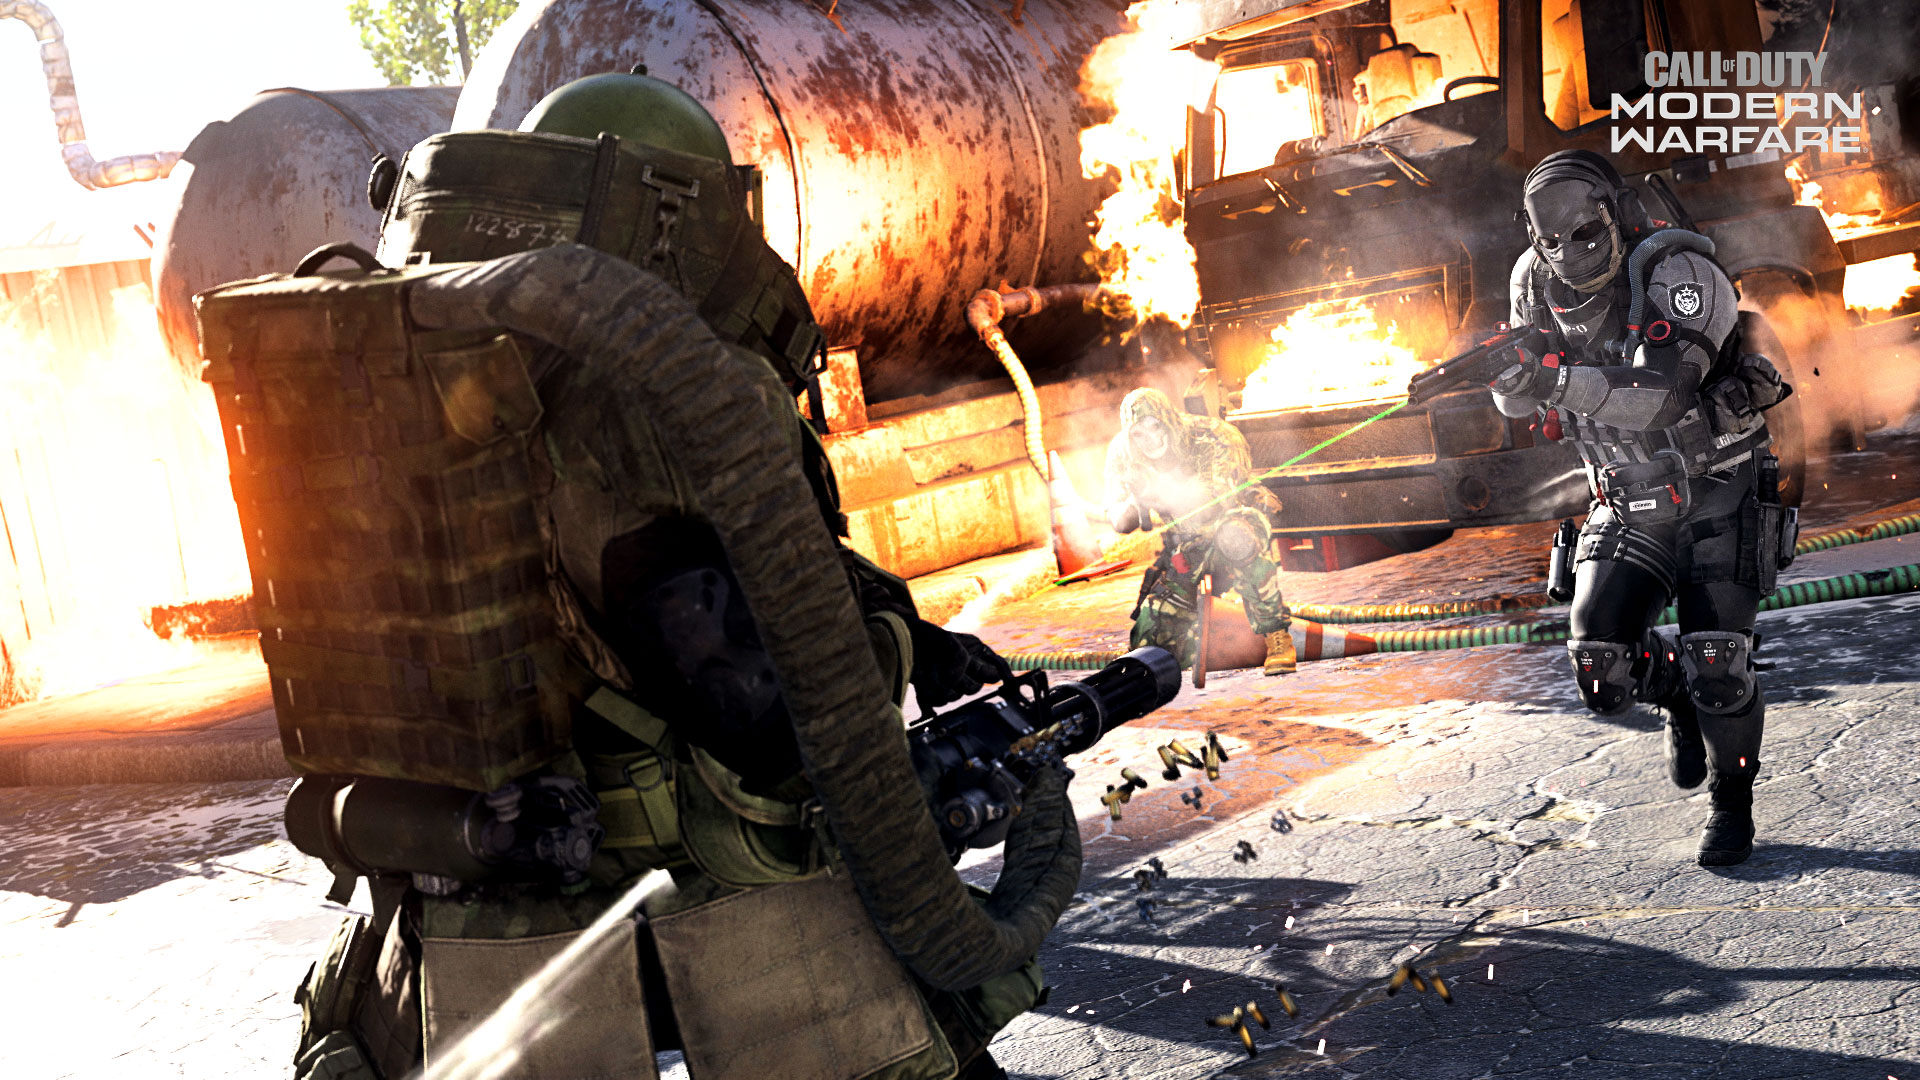 Captain Price leads the charge in a packed new Season of Call of Duty®: Modern Warfare® including Warzone - Image 4